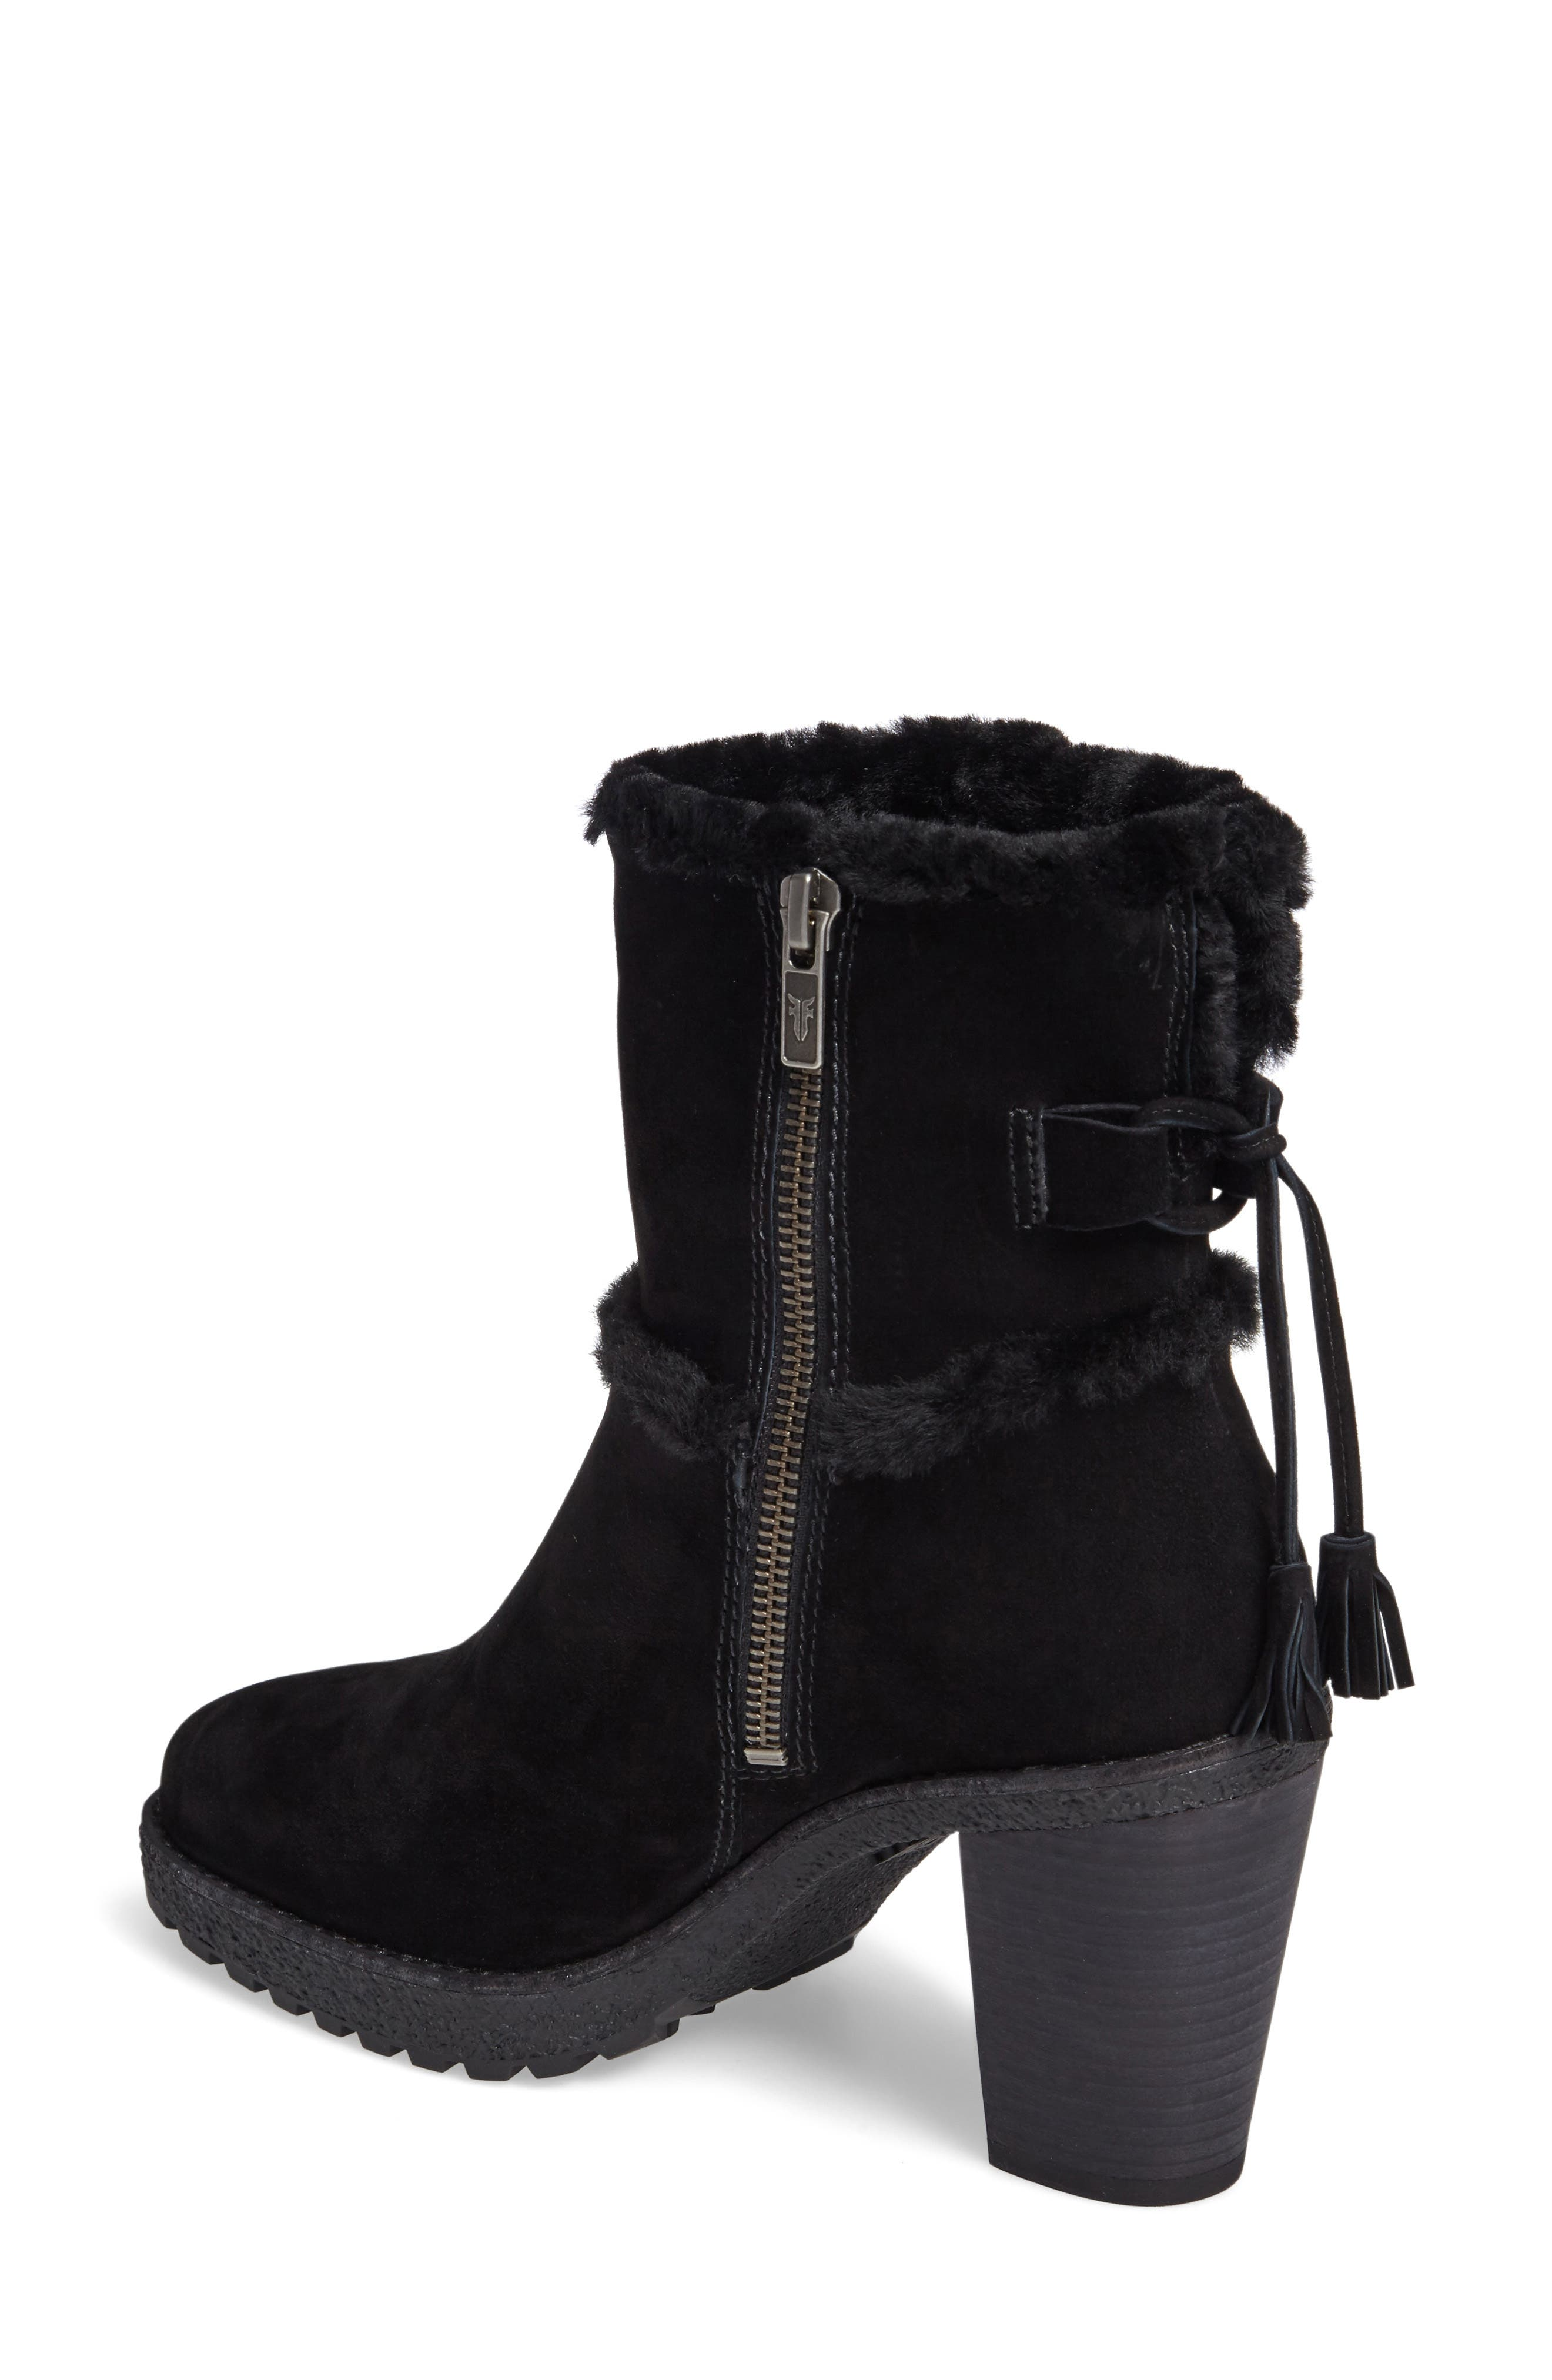 Jen Genuine Shearling Lined Water Resistant Boot,                             Alternate thumbnail 3, color,                             001